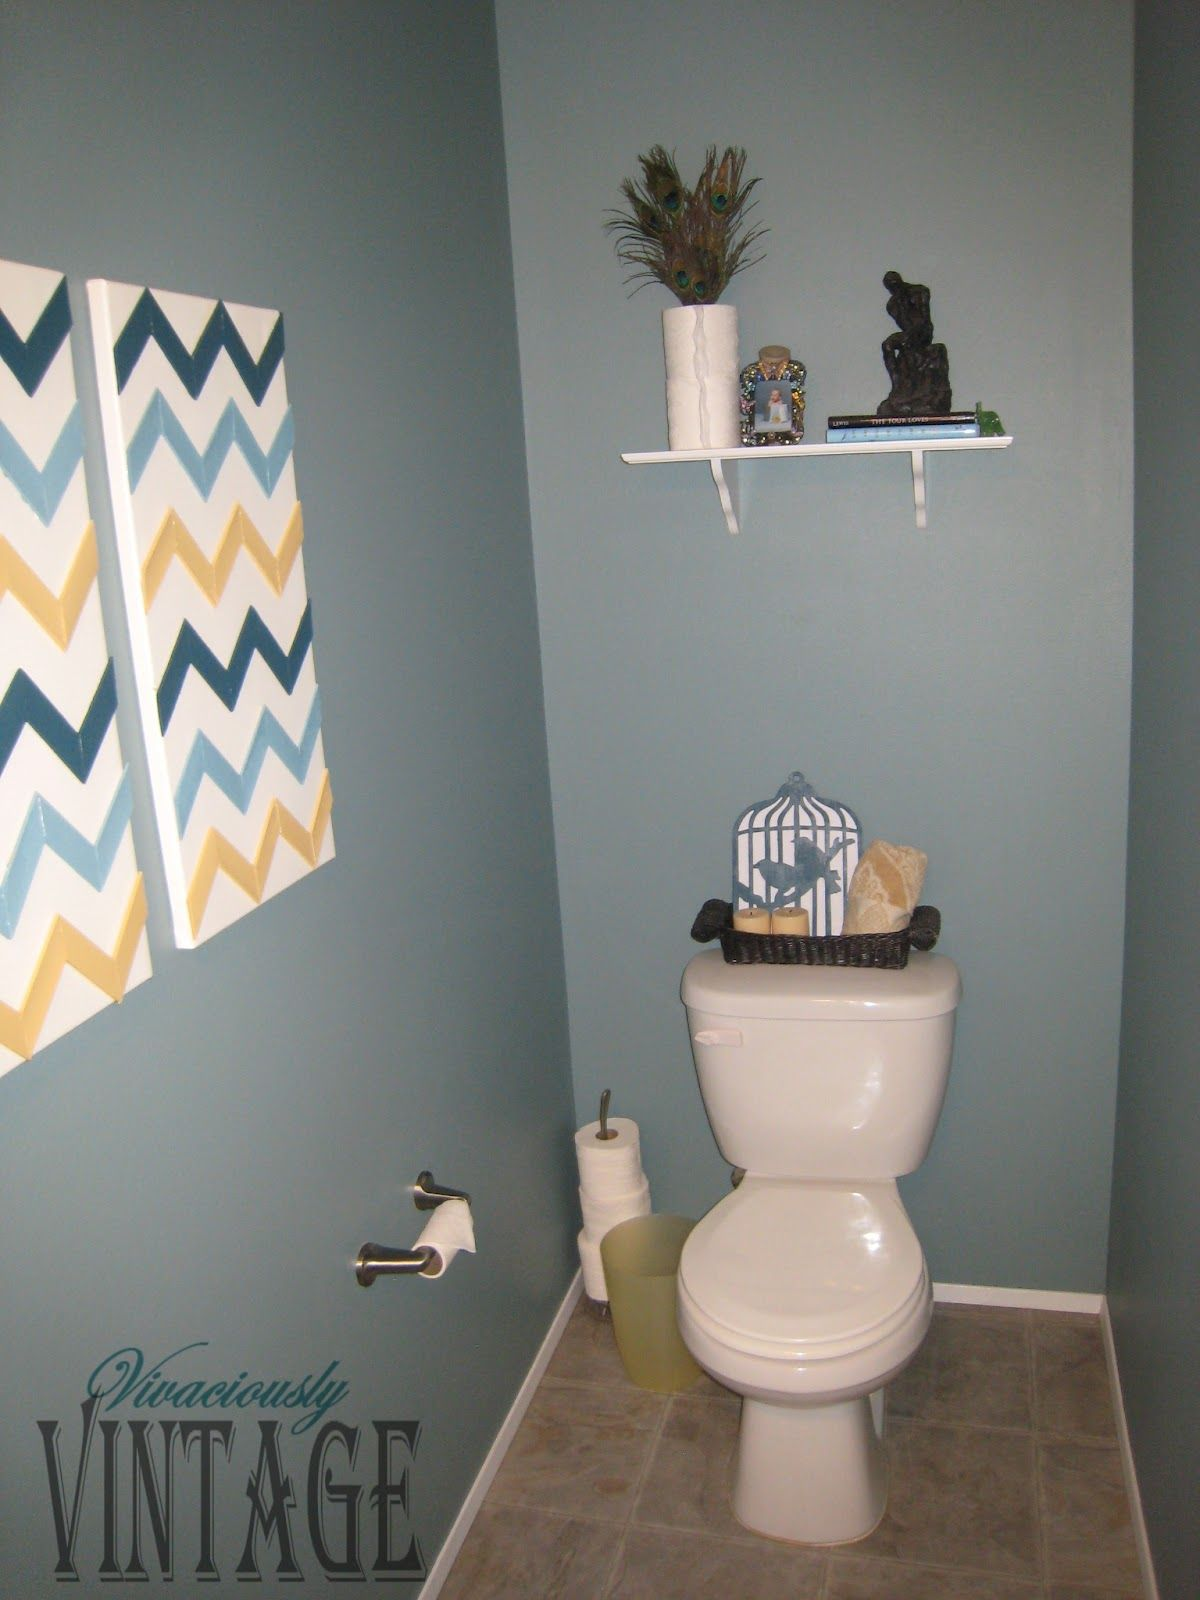 Half Bathroom Decorating Downstairs Toilet Decorating Ideas Vivaciously Vintage Half